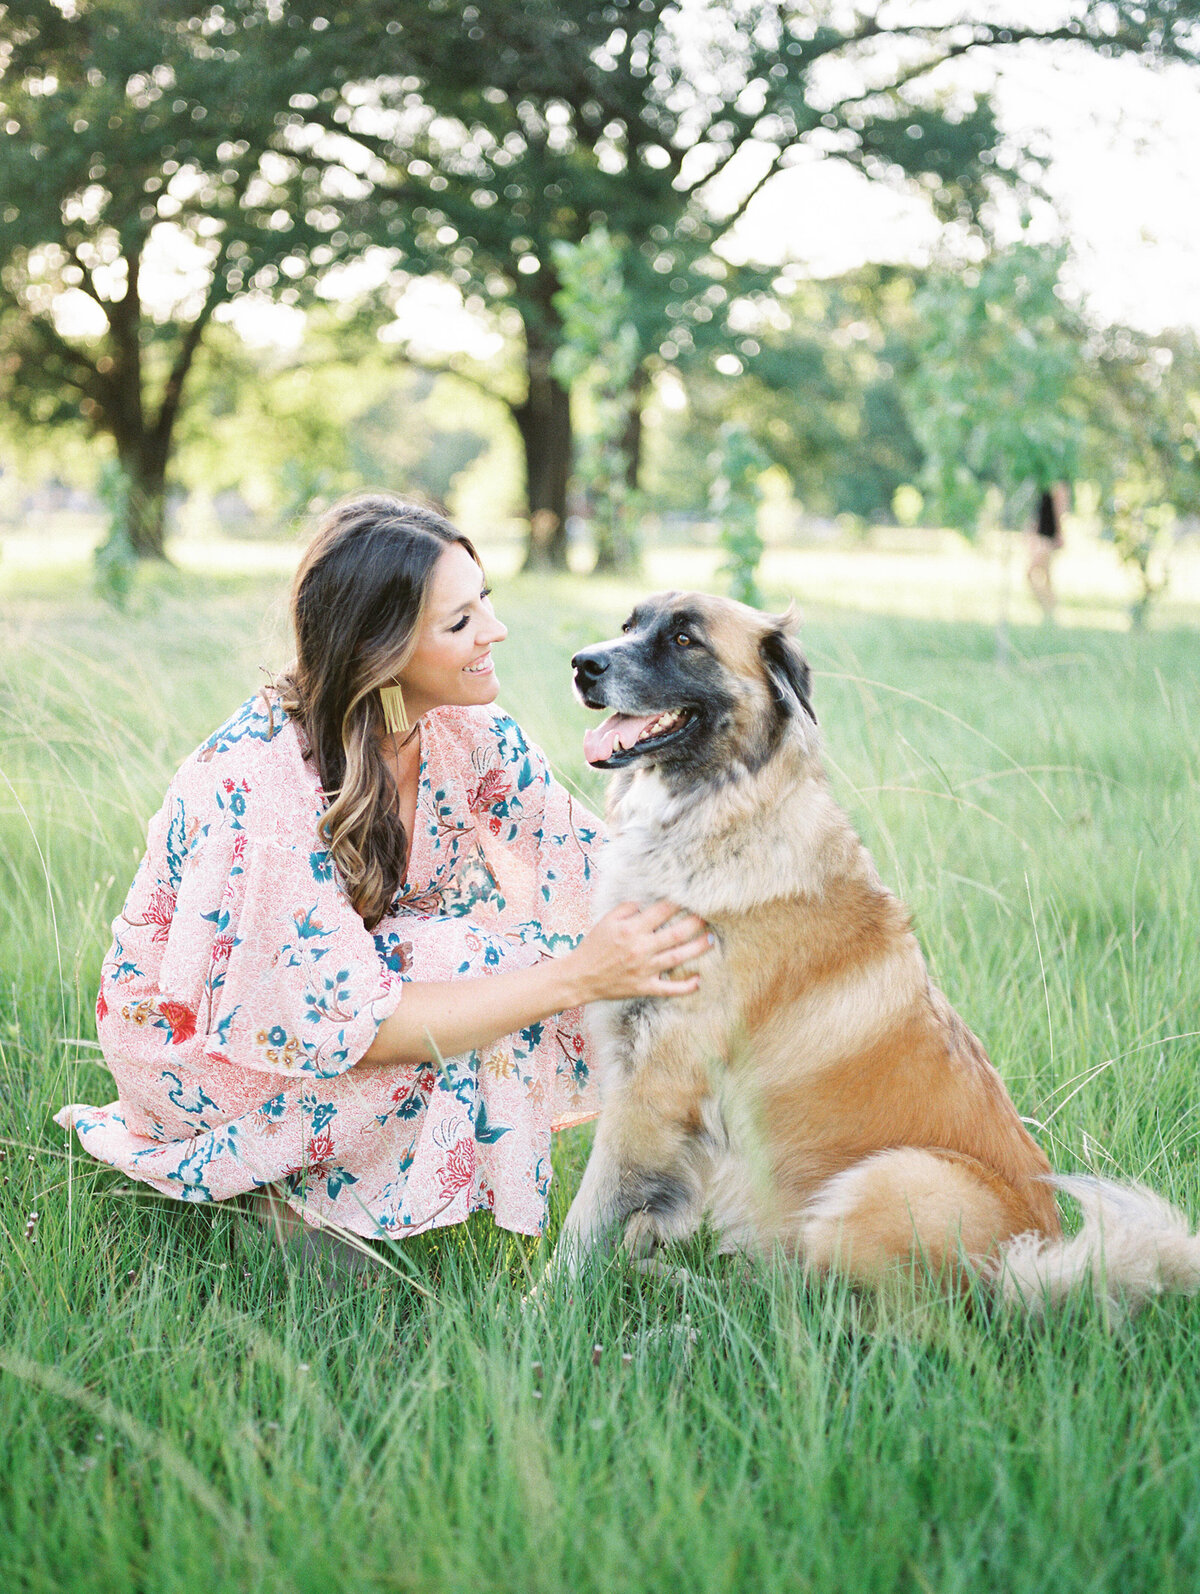 Maternity-Portraits-Houston-Summer-Taccolini-Melanie-Julian-Photography-56